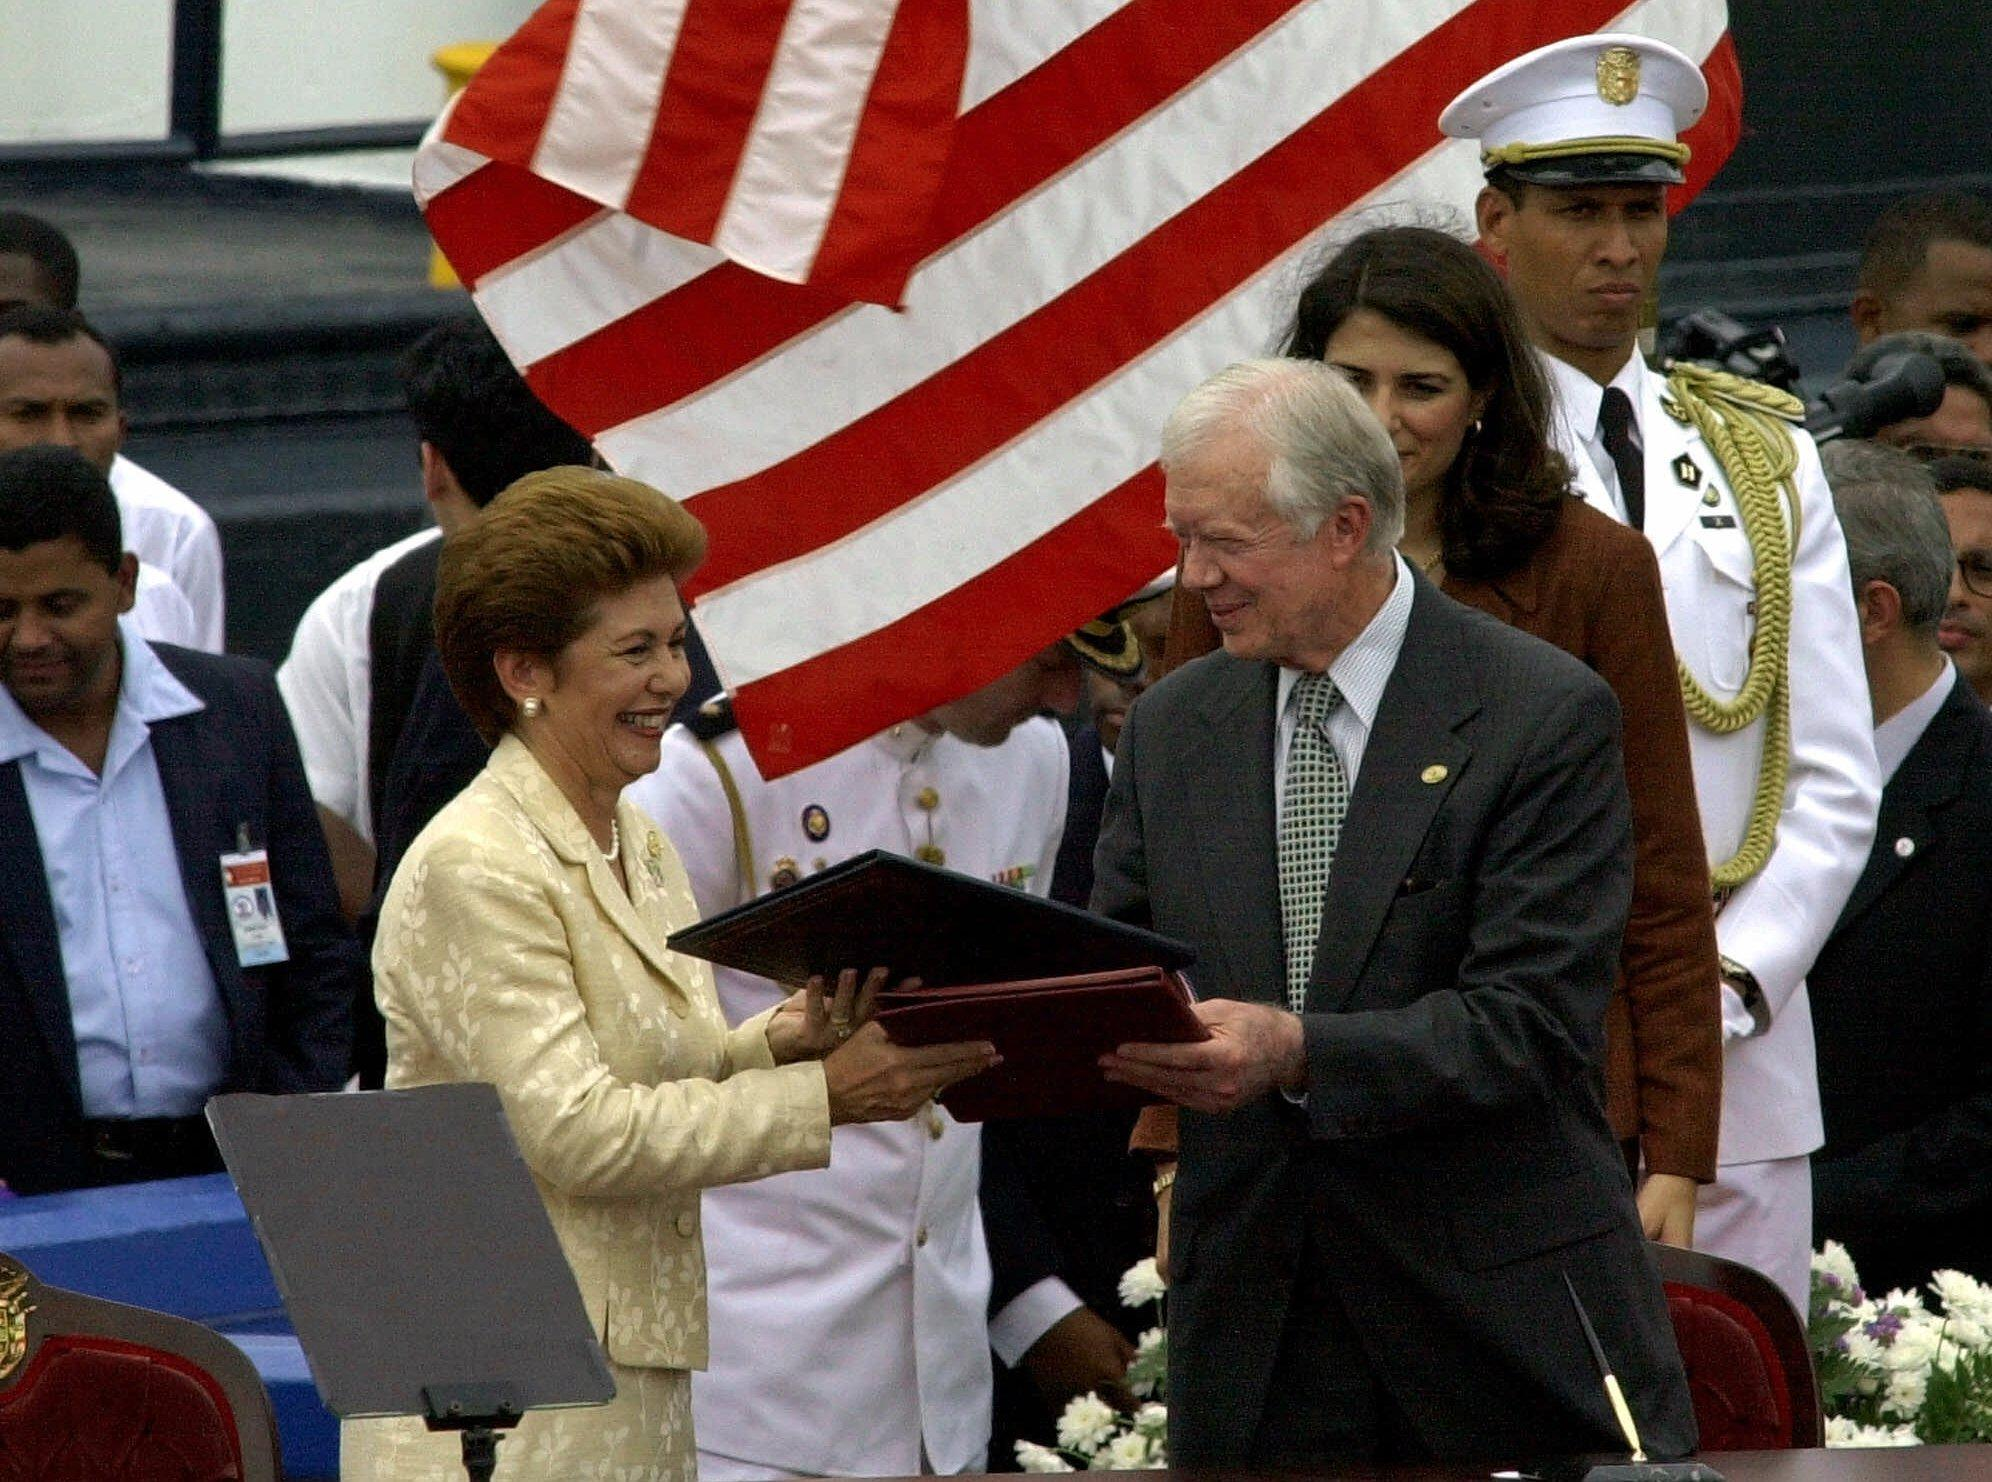 Former U.S. President Jimmy Carter with Panamanian President Mireya Moscoso during a ceremony to transfer control of the Panama Canal on Dec. 14, 1999.